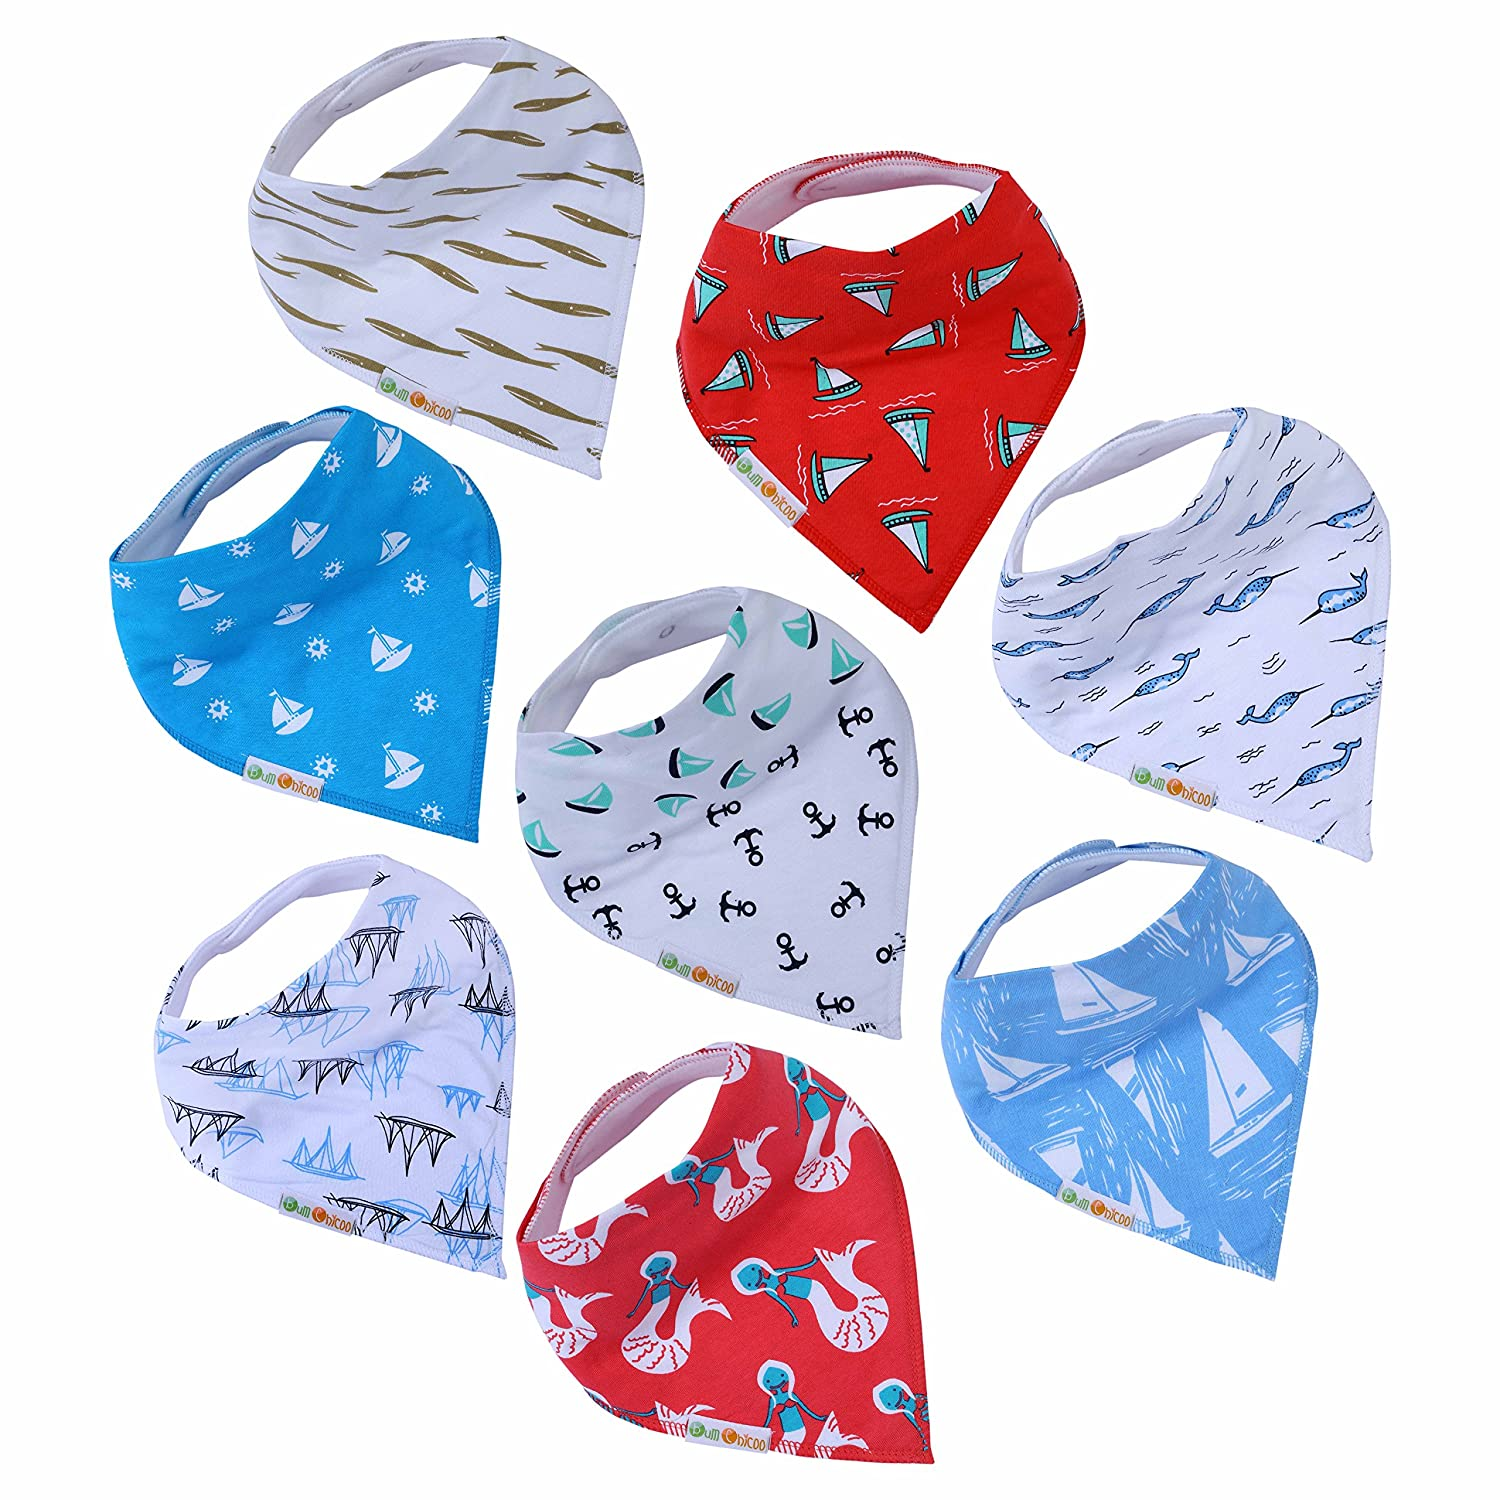 Baby Bandana Drool Bibs,Set of 6 Extra Large Solid Color Bibs,Made with Organic Cotton, Super Absorbent,Adjustable Snaps,Toddler Baby Bibs for Drooling,Teething and Feeding